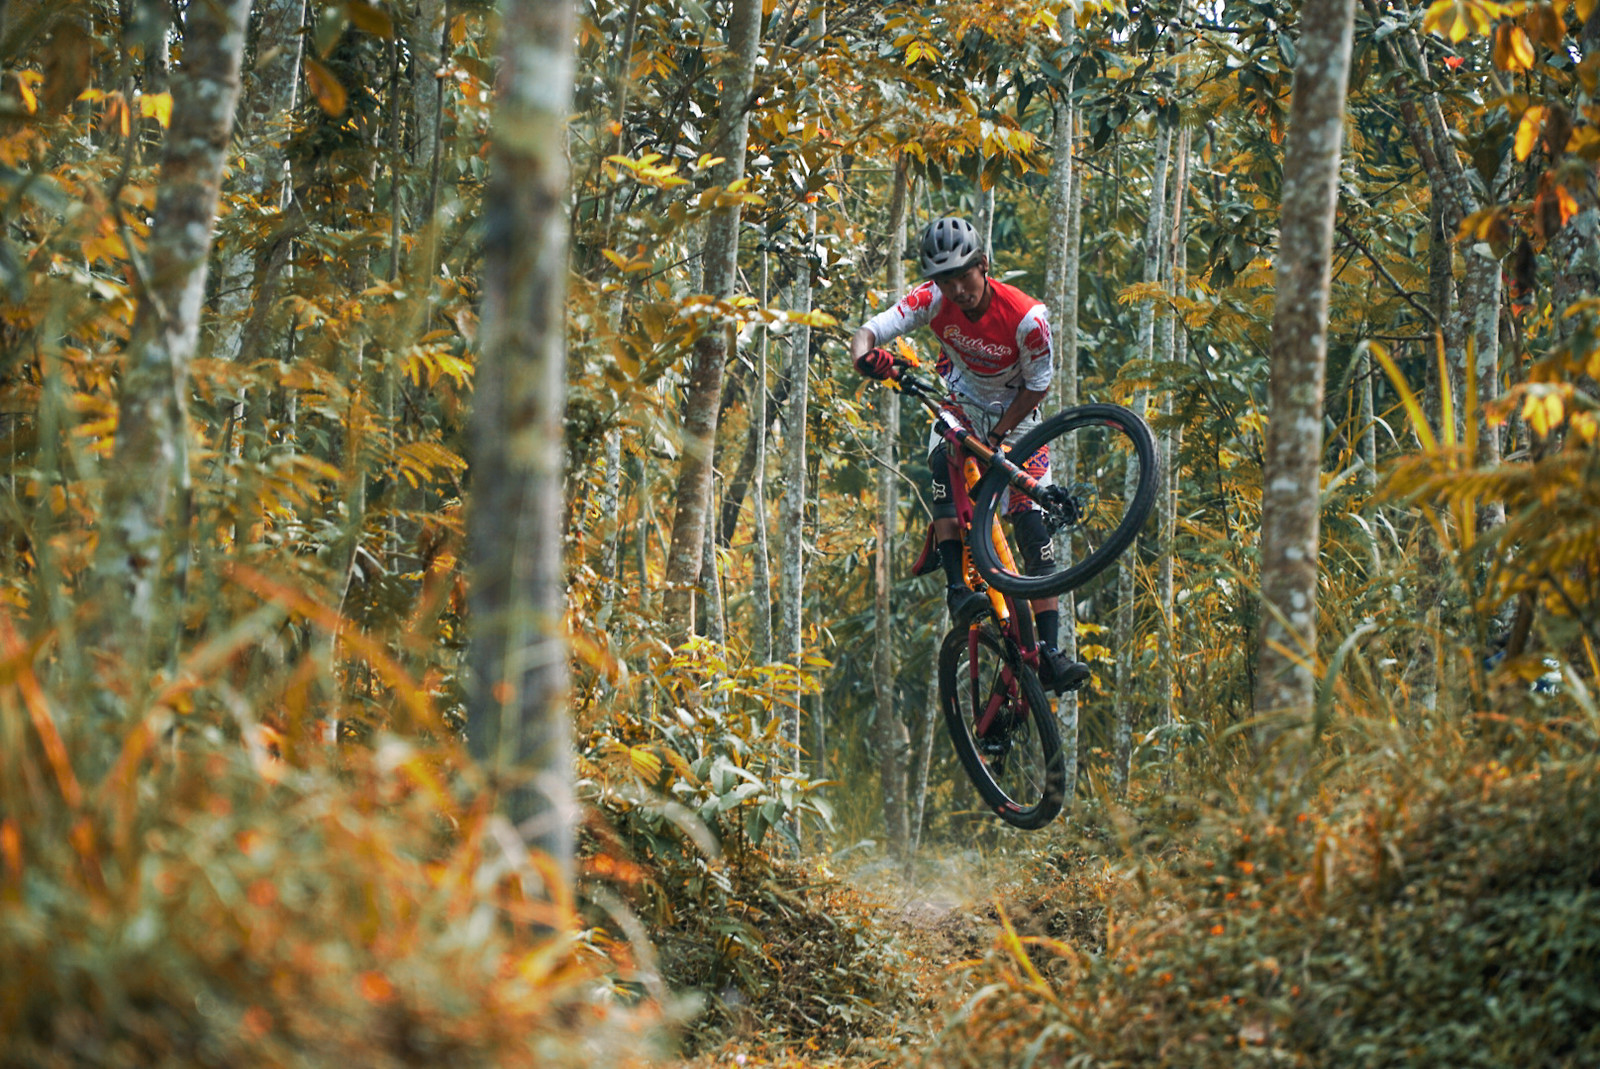 Its autumn already - RezaAkhmad - Mountain Biking Pictures - Vital MTB